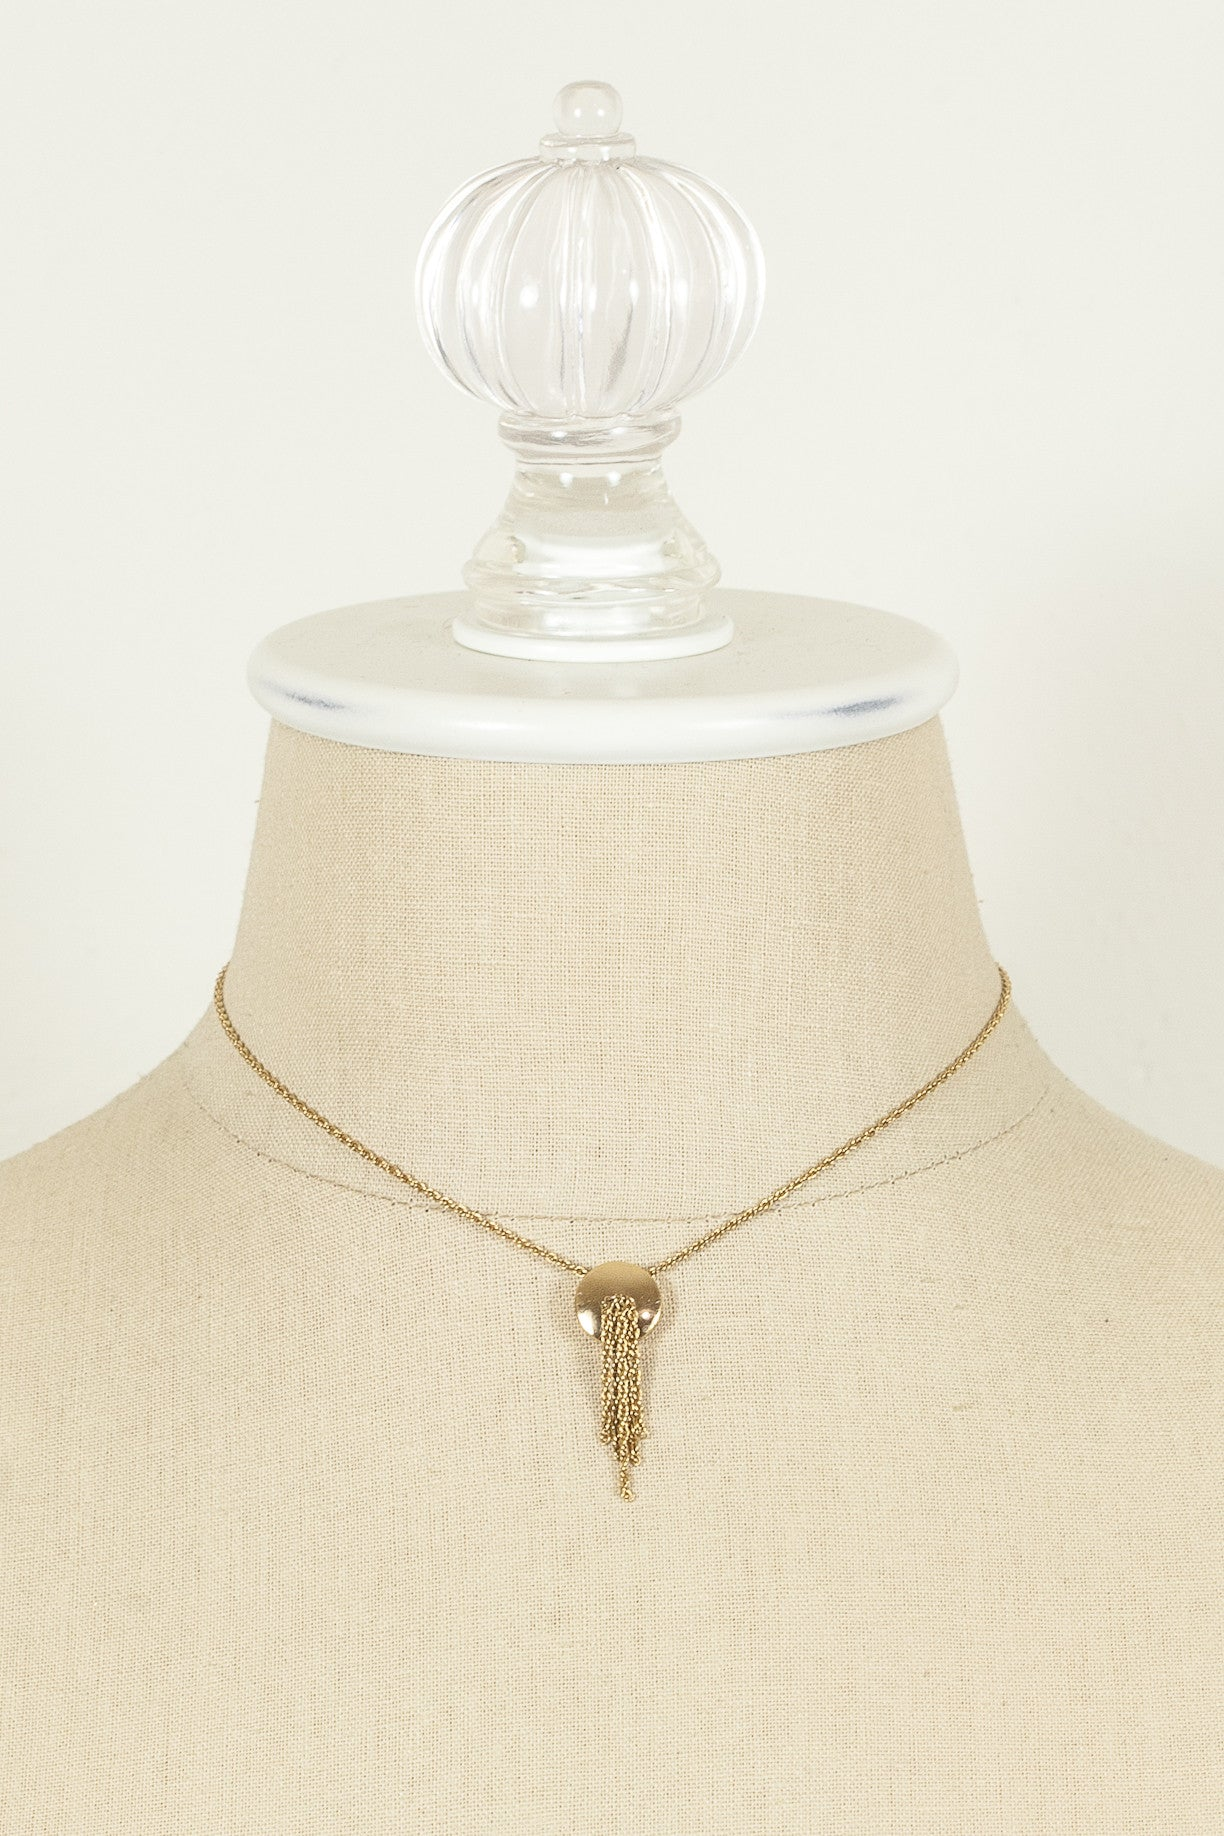 Vintage Monet Dainty Tassel Charm Necklace